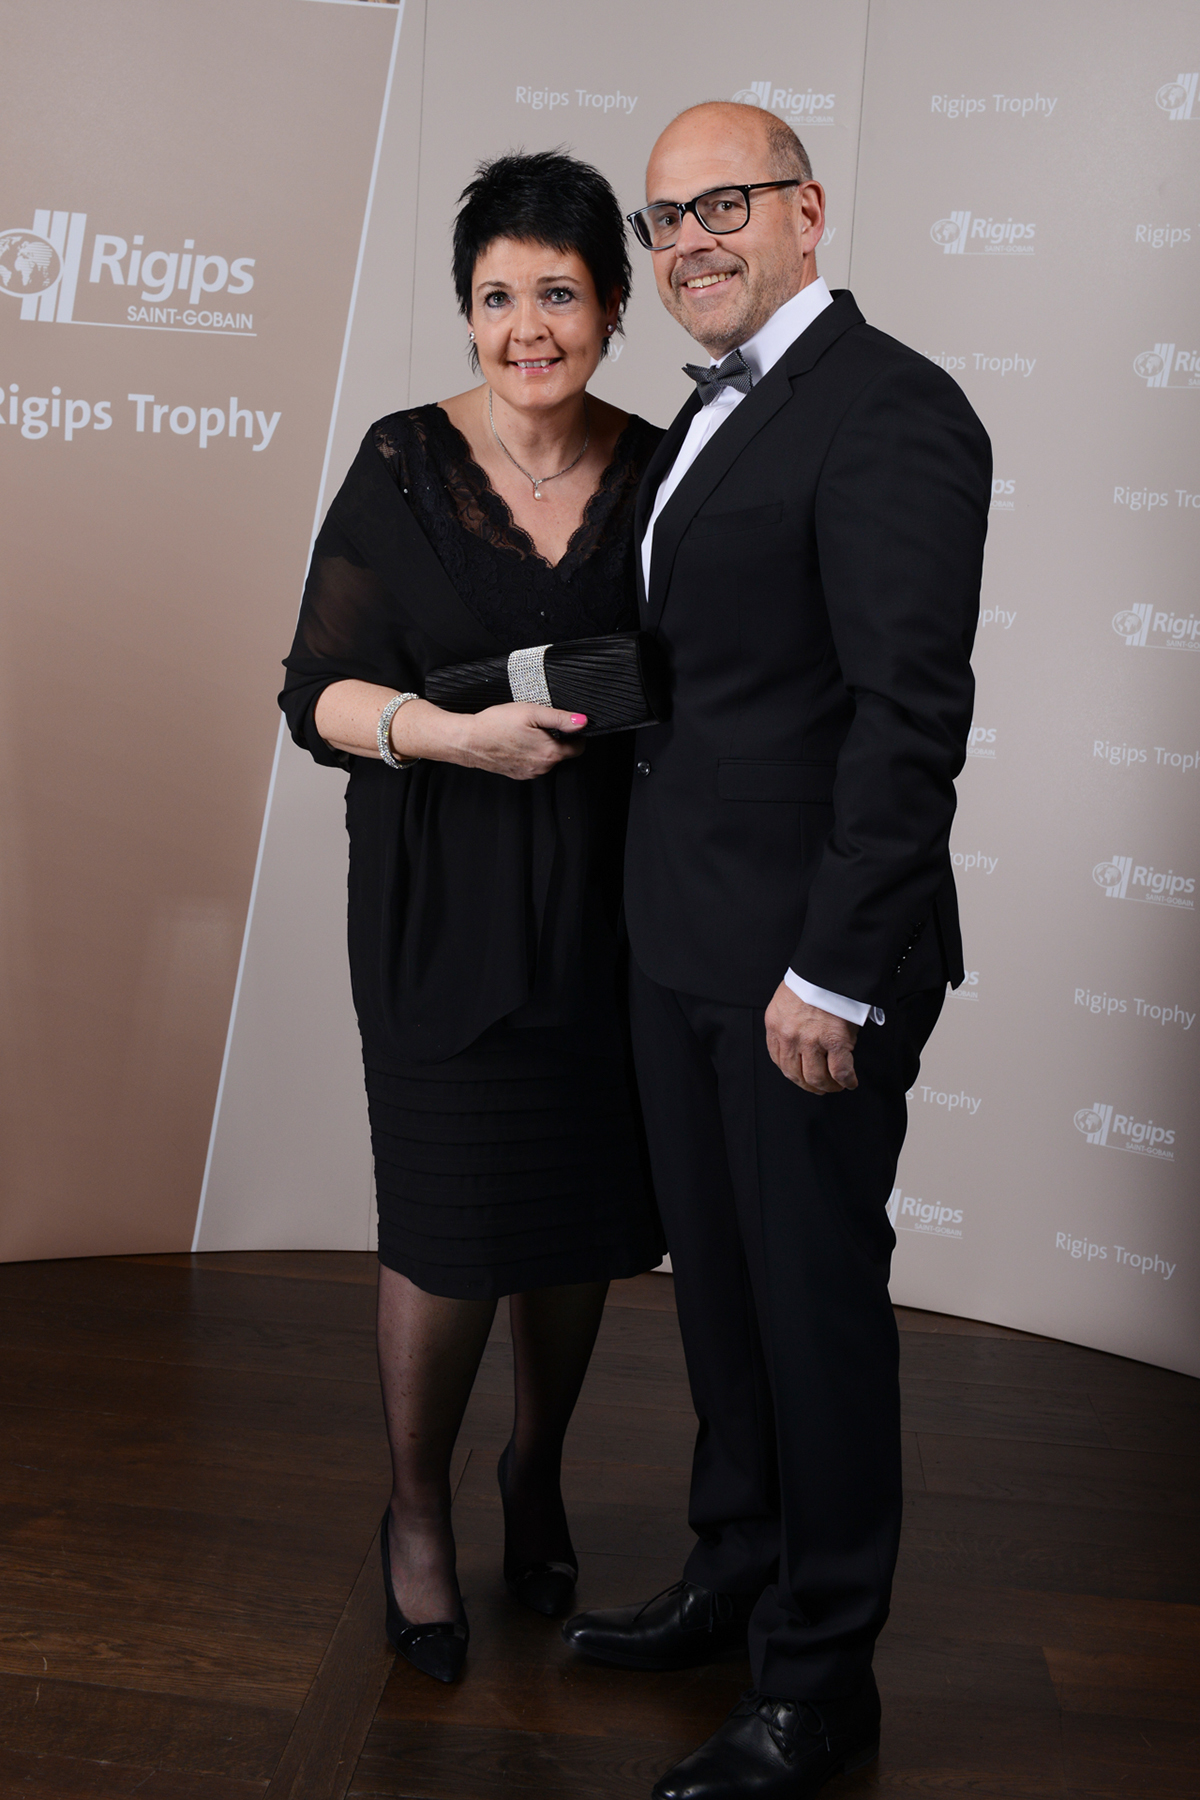 Rigips Trophy 16_0220